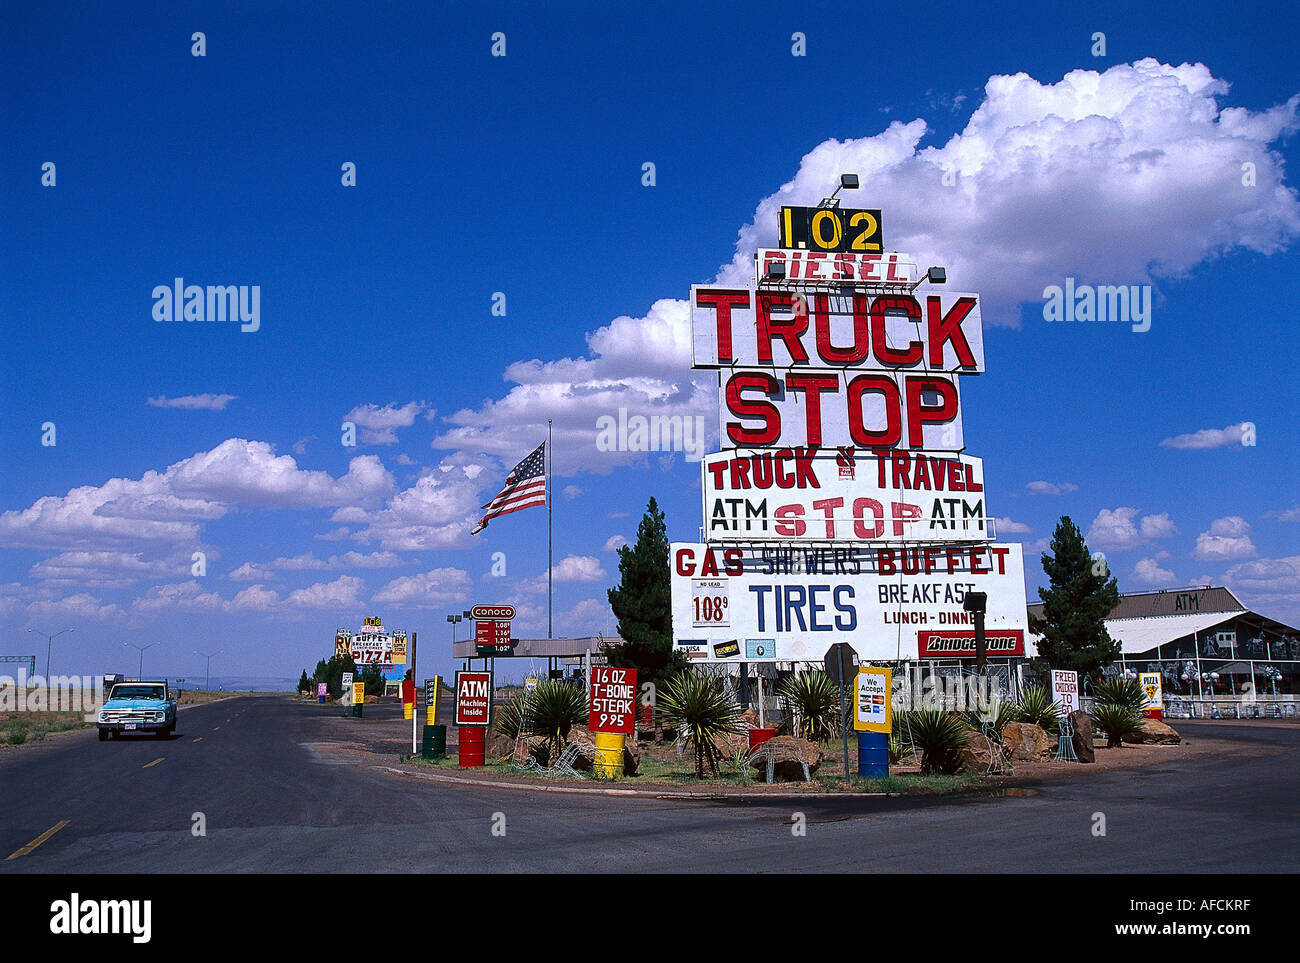 Truck Stop Van Horn Texas Usa Stock Photo Royalty Free